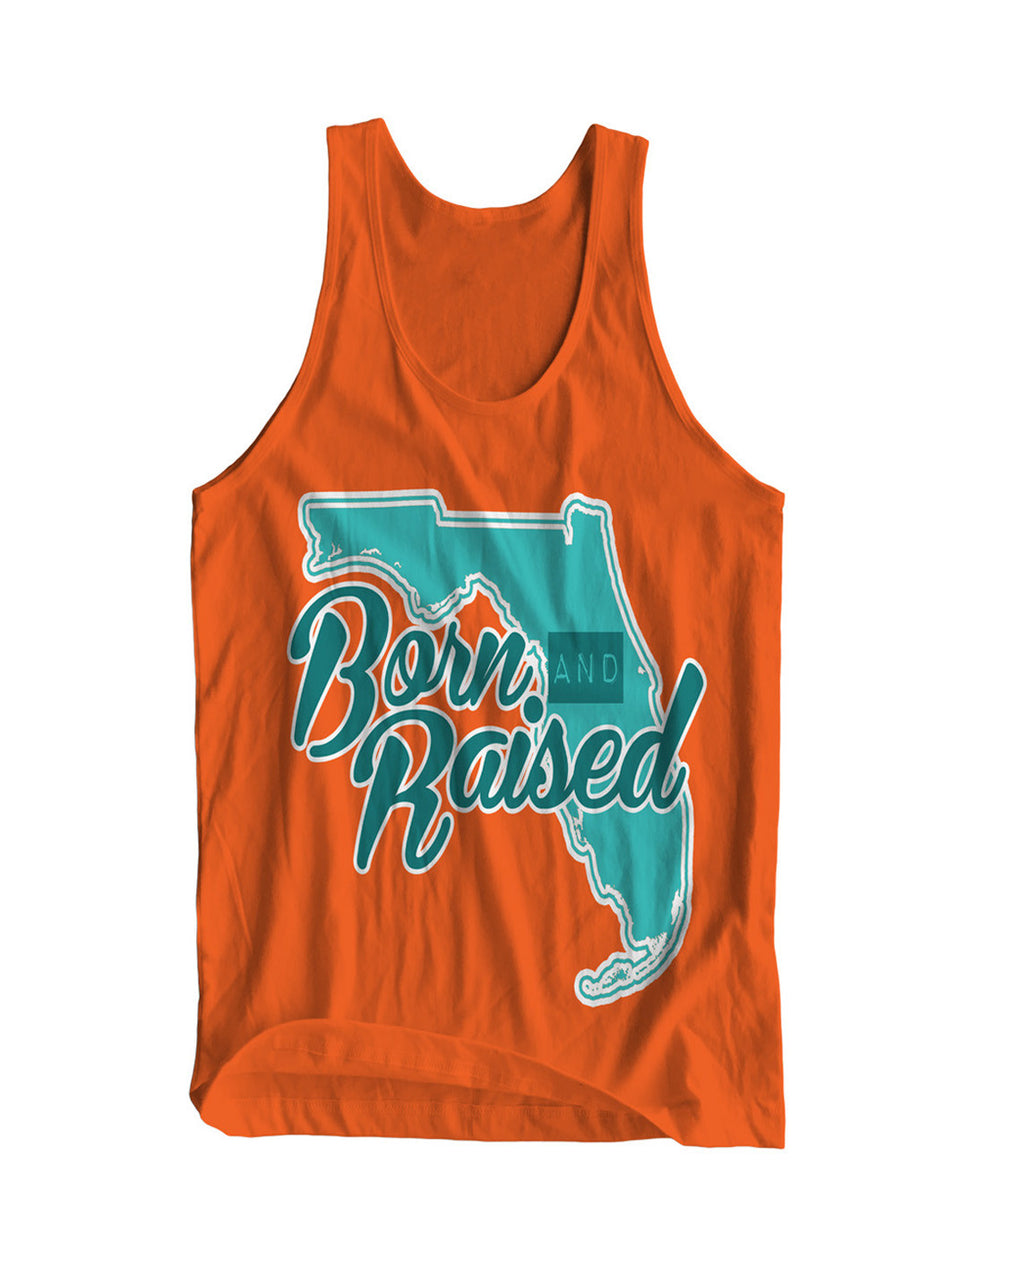 Florida: Born & Raised Tank in Orange - Originalitees